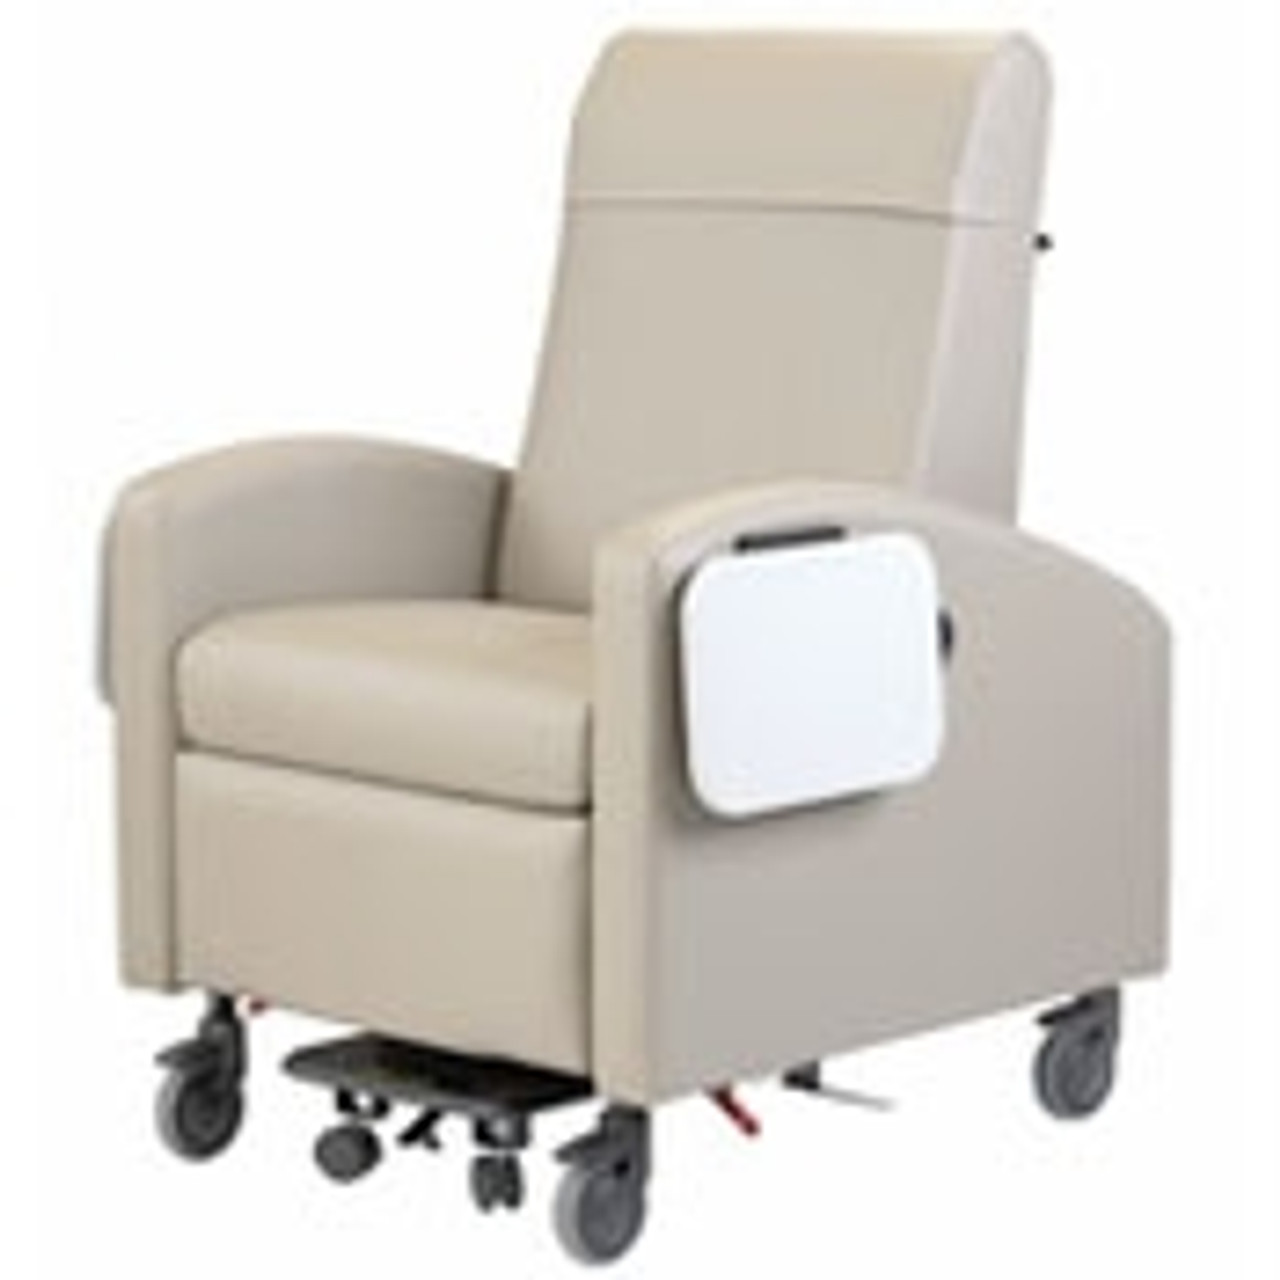 Bariatric Chairs & Recliners